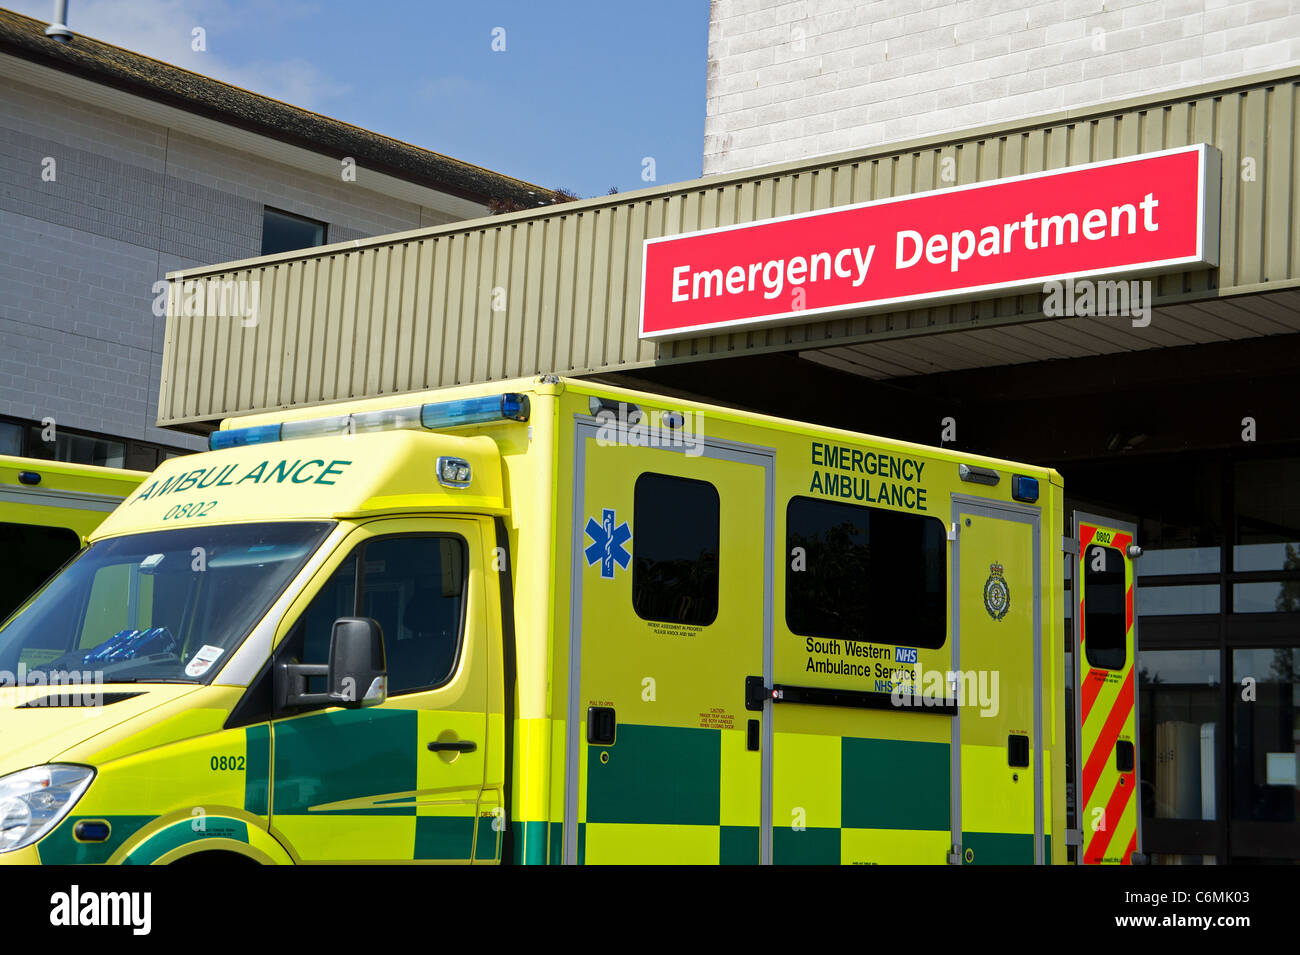 An ambulance outside the accident and emergency department at the royal cornwall hospital, truro, cornwall, uk - Stock Image